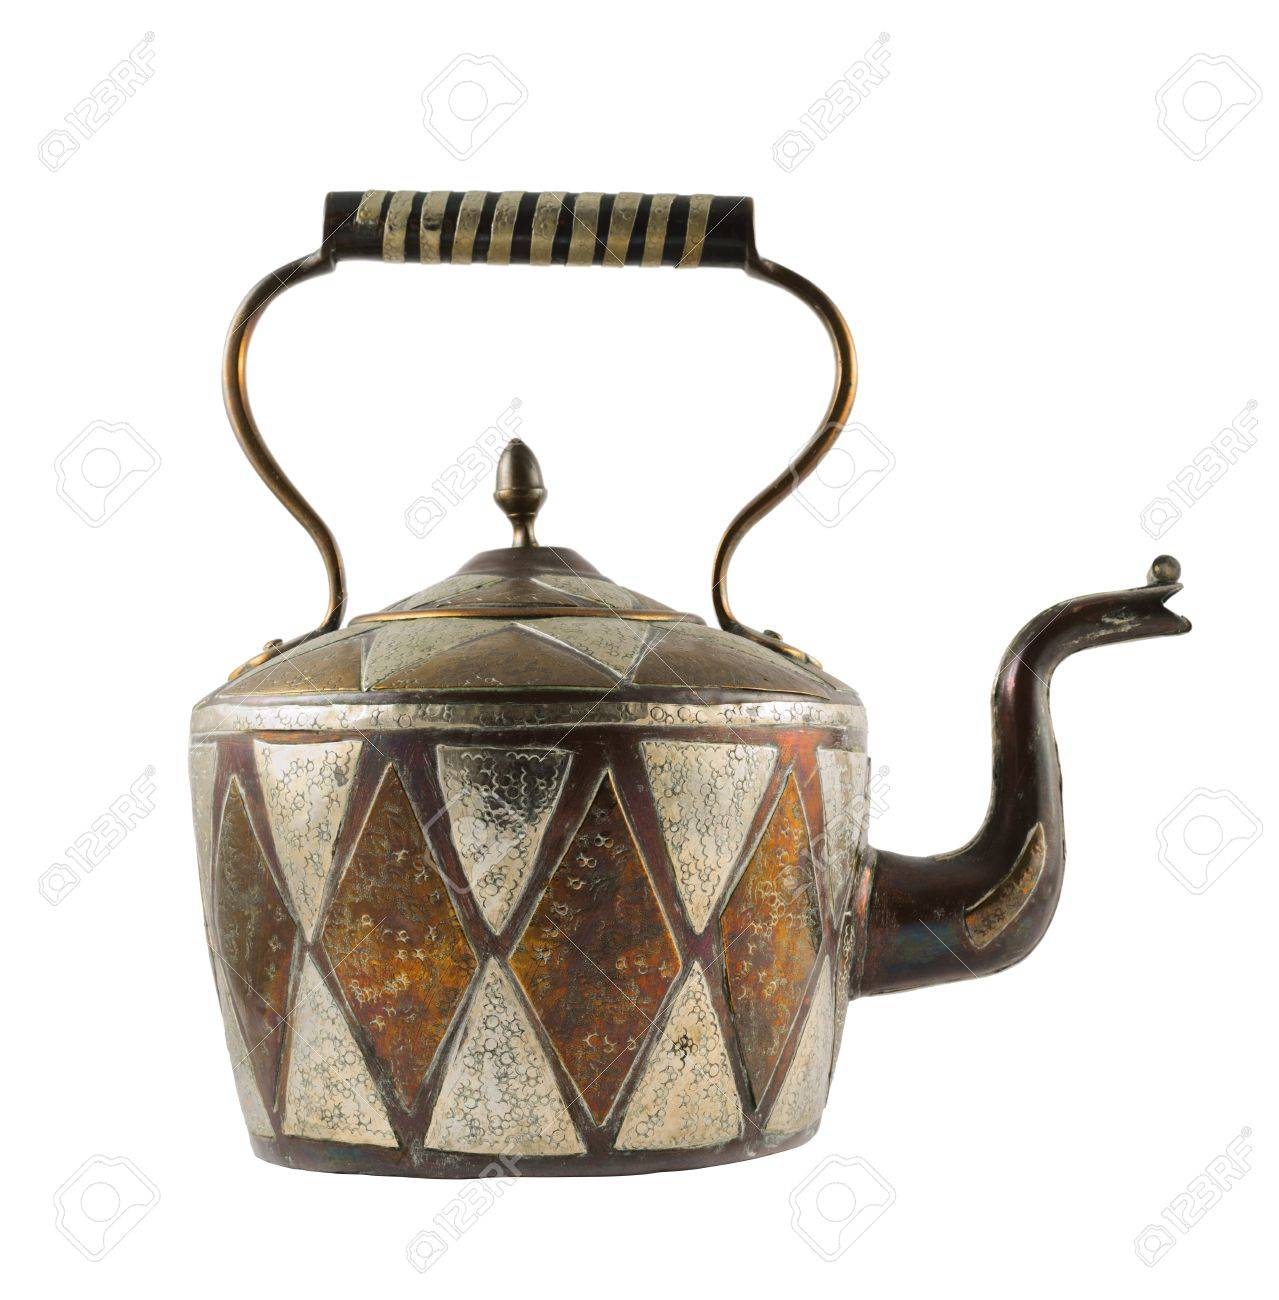 Authentic metal teapot vessel covered with ornaments isolated over white background, front view Stock Photo - 20036287